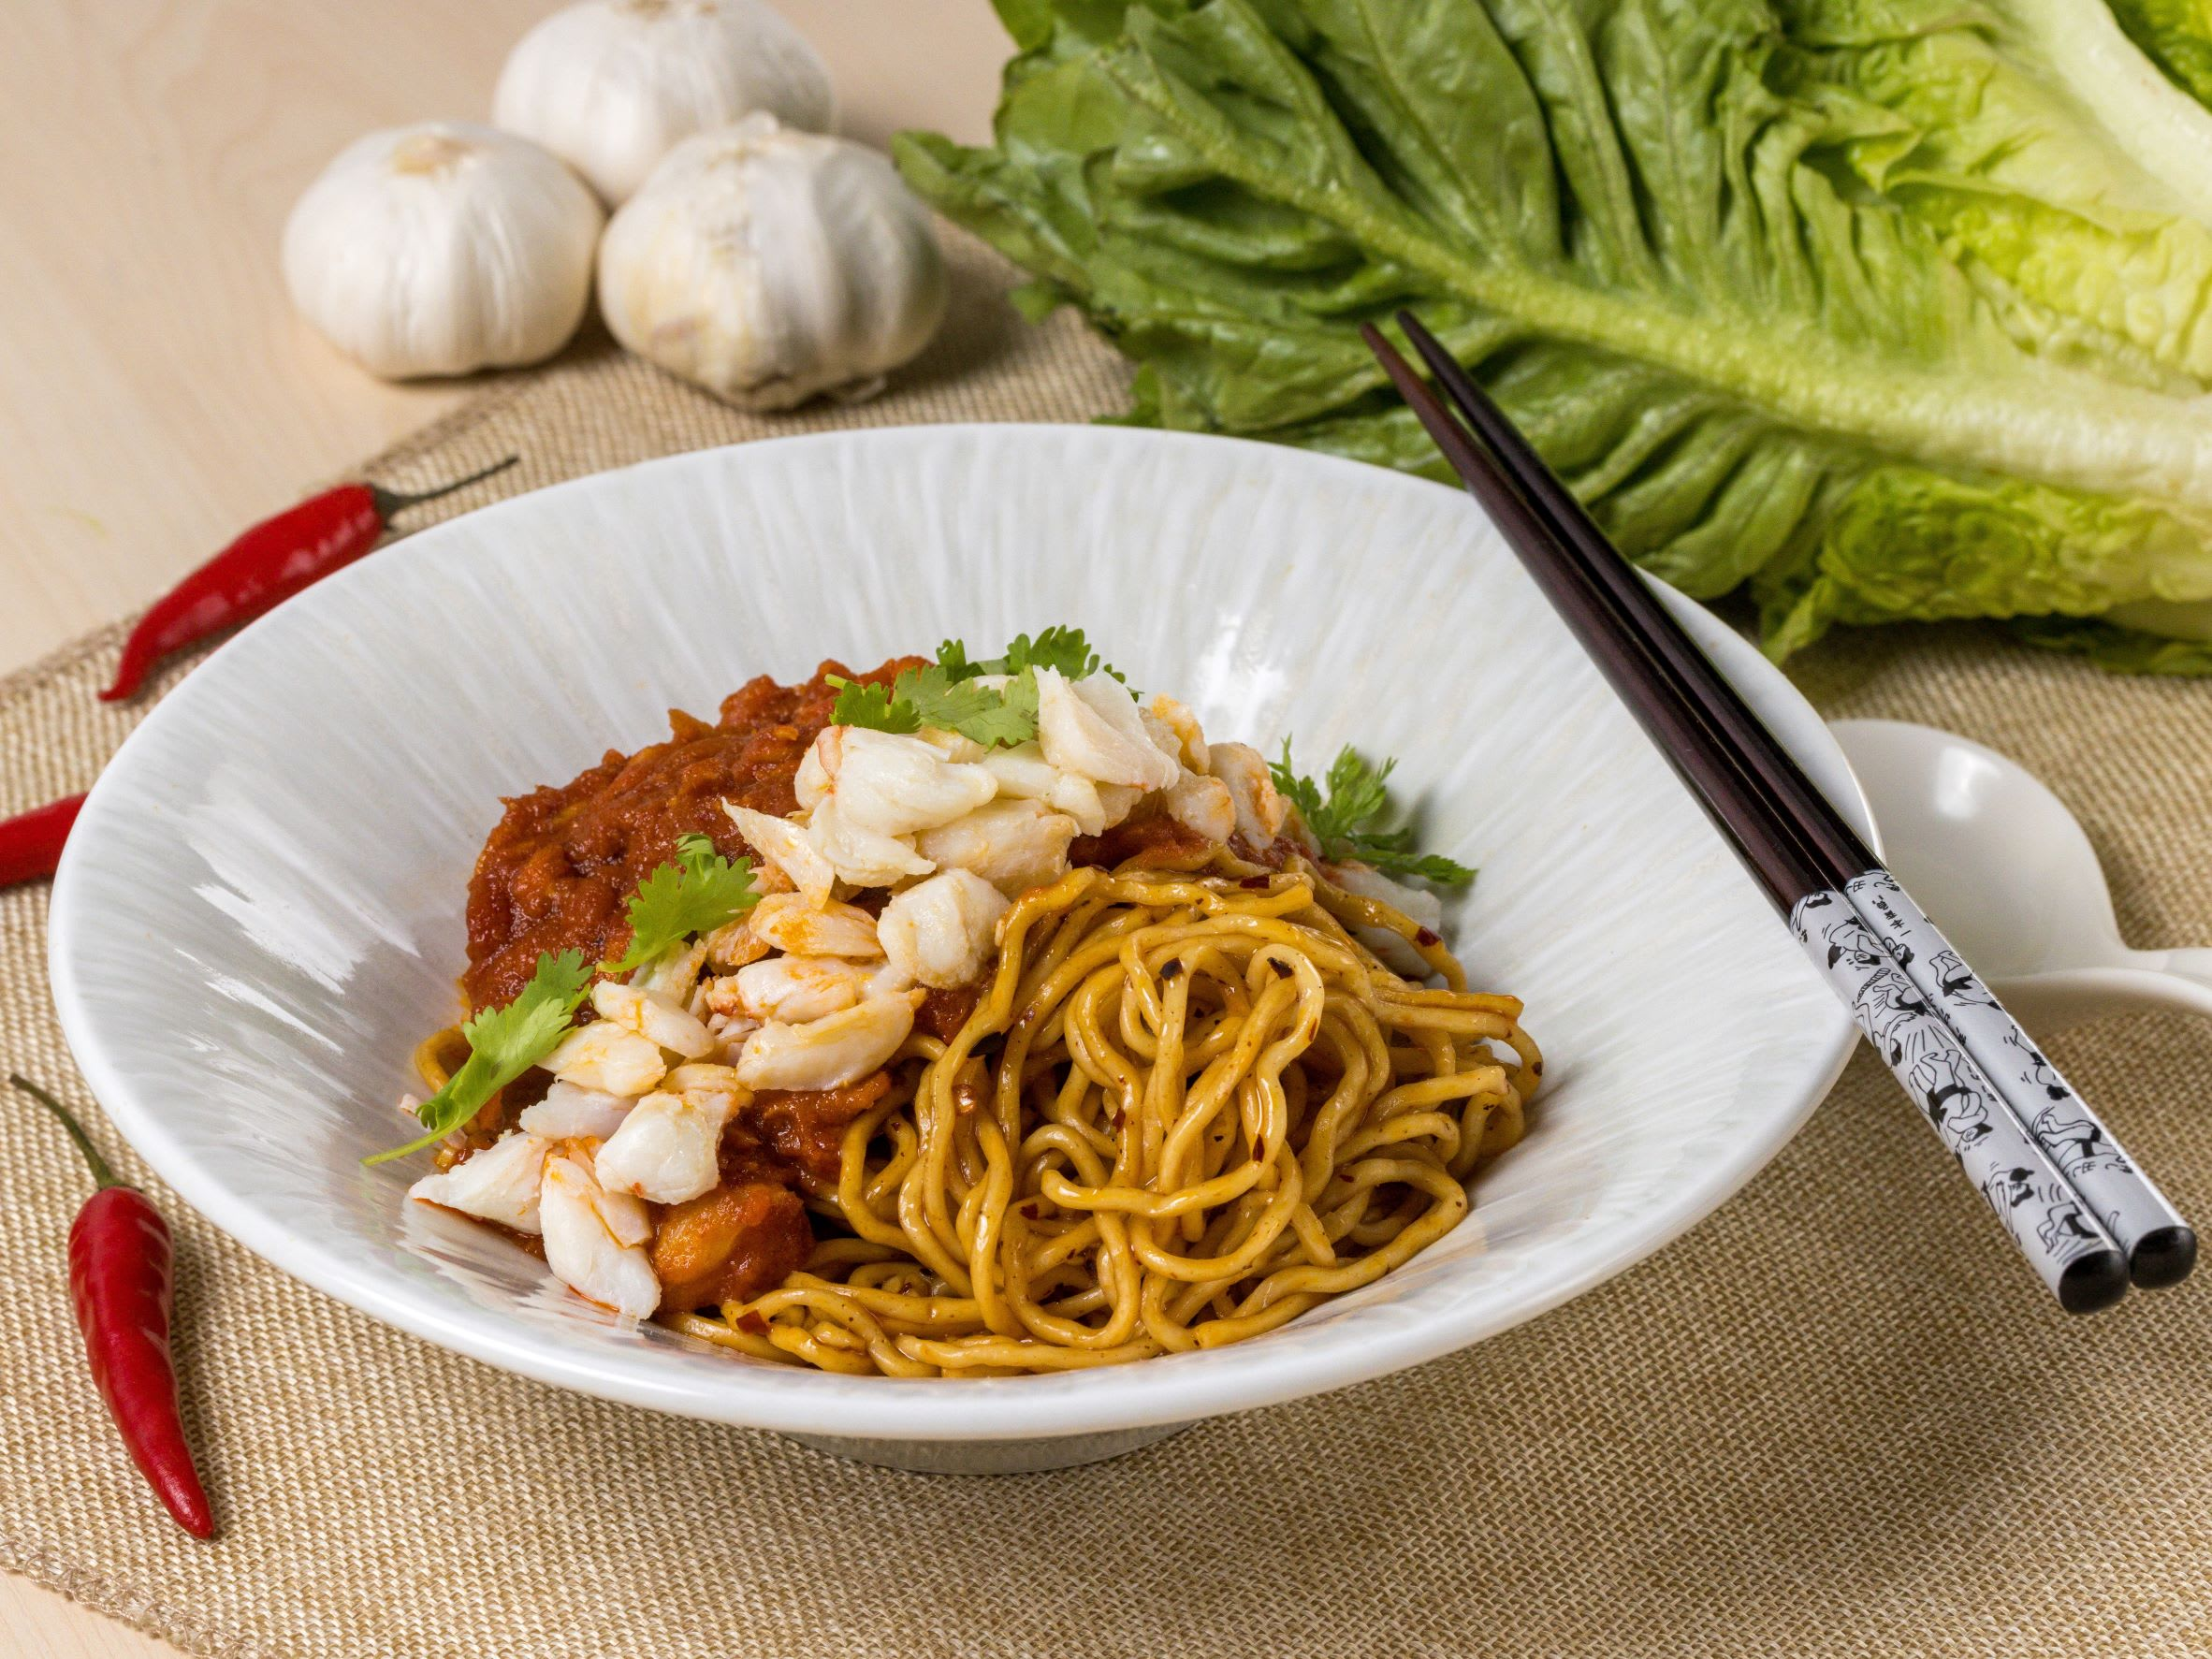 Singapore cuisine goes sustainable while celebrating its rich gastronomic heritage and flavours